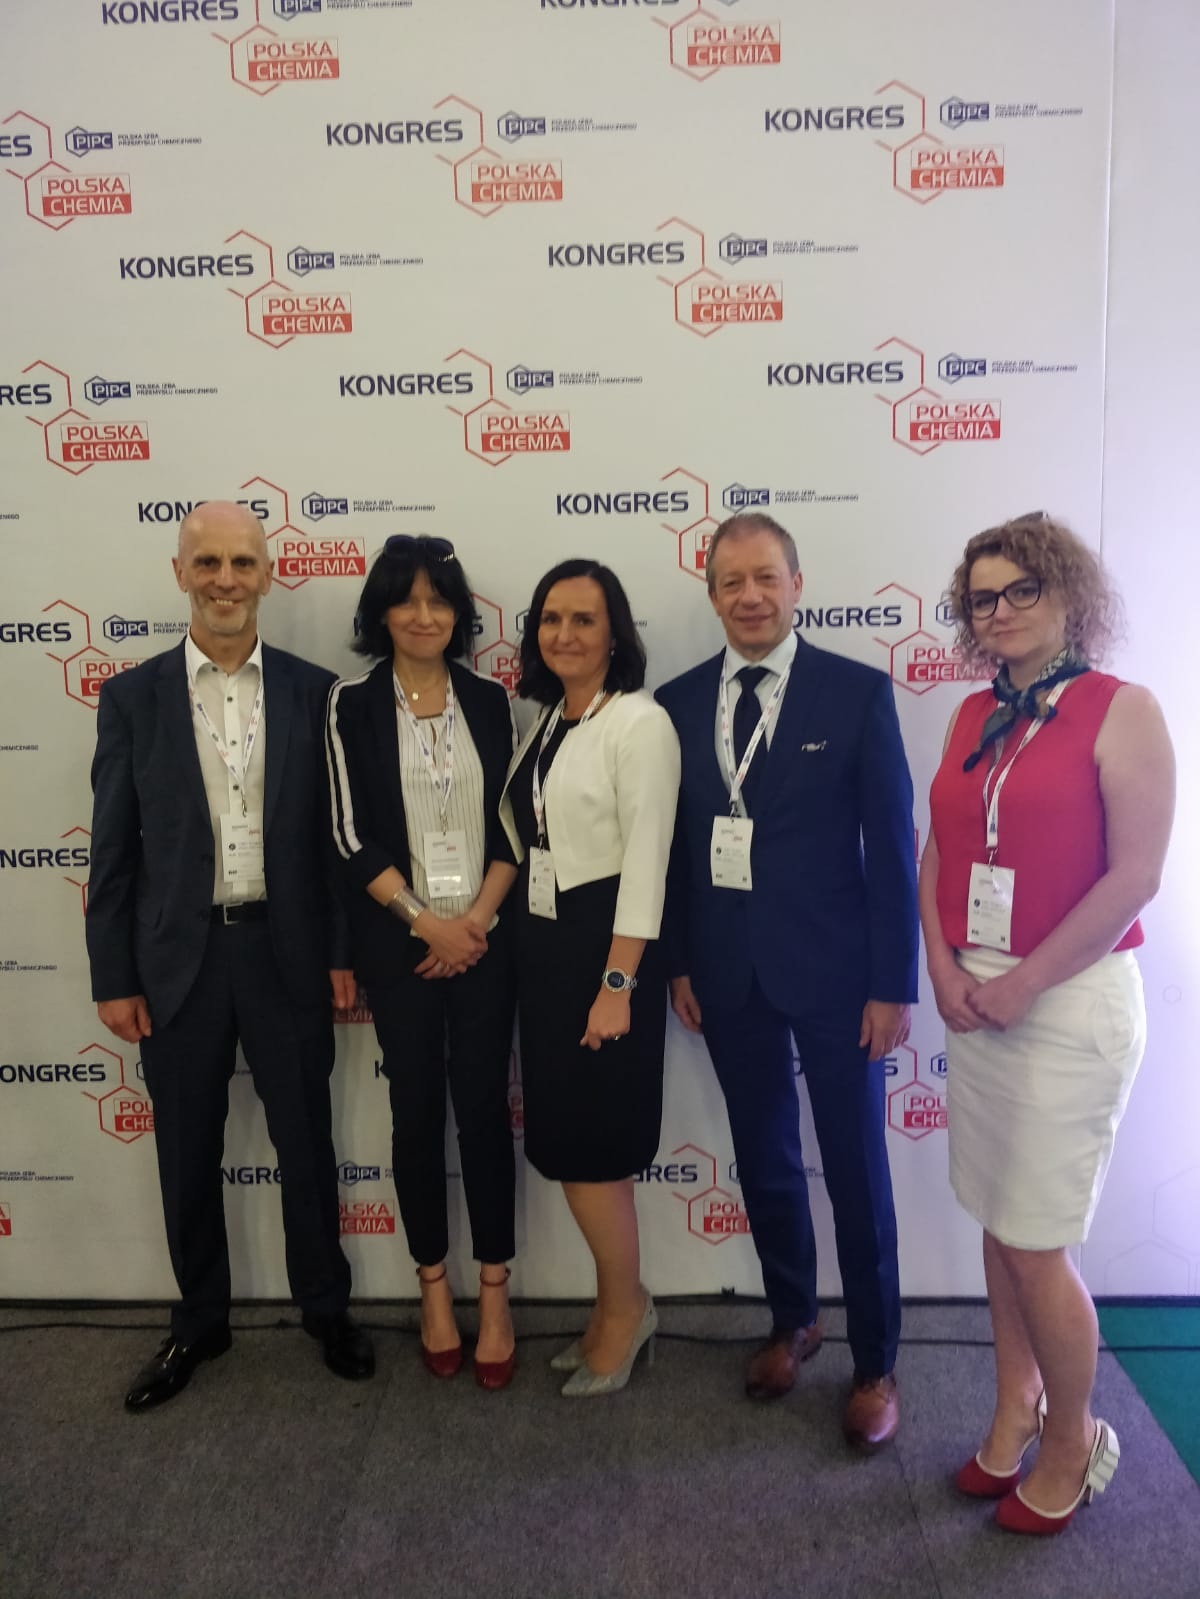 Challenges and current situation of the Polish chemical industry discussed in Płock